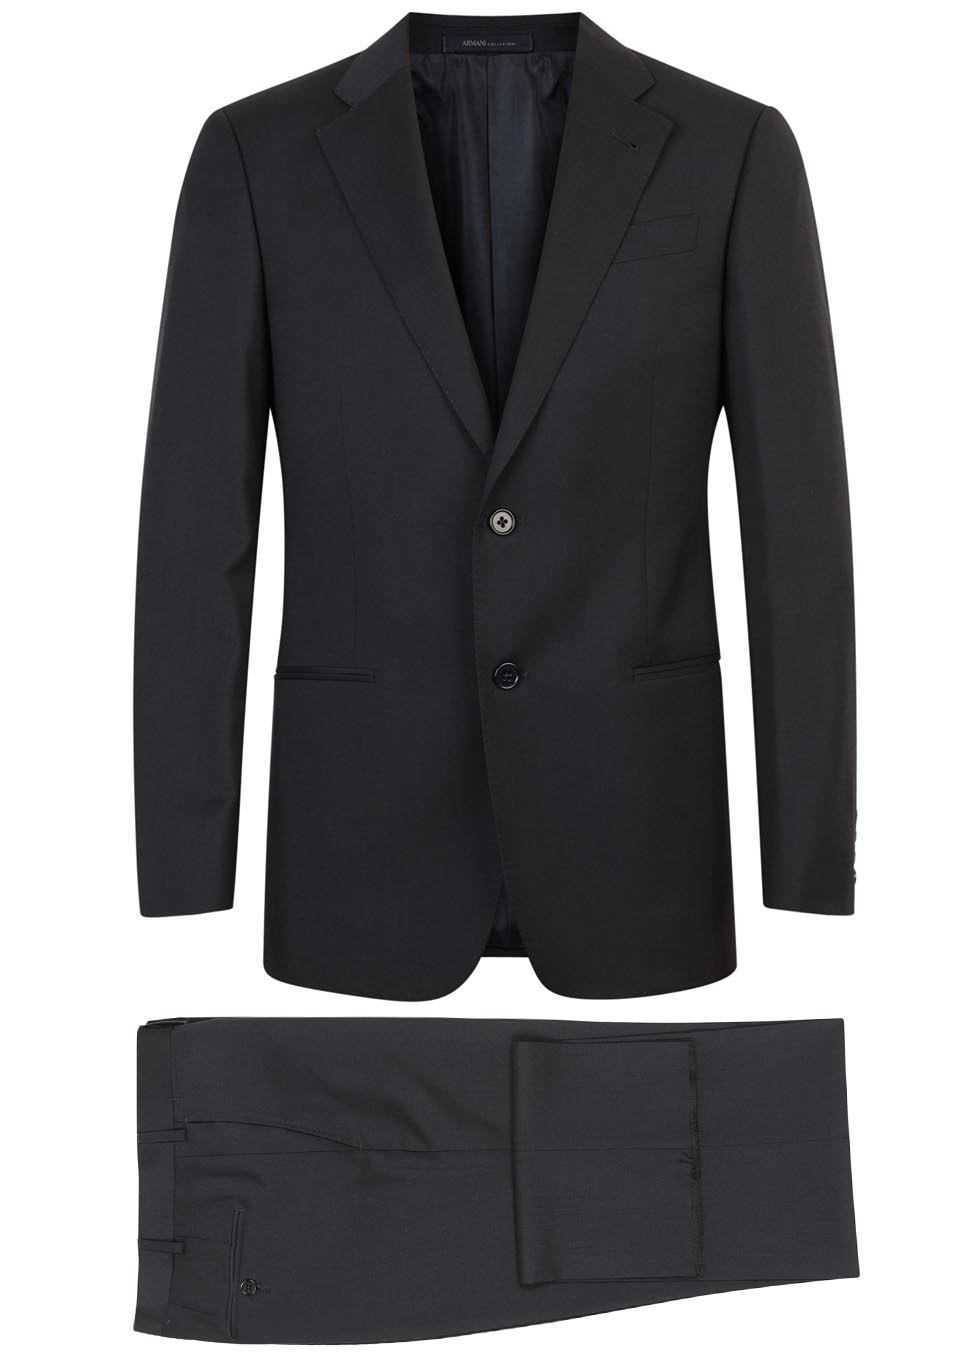 G-line navy wool suit - Emporio Armani